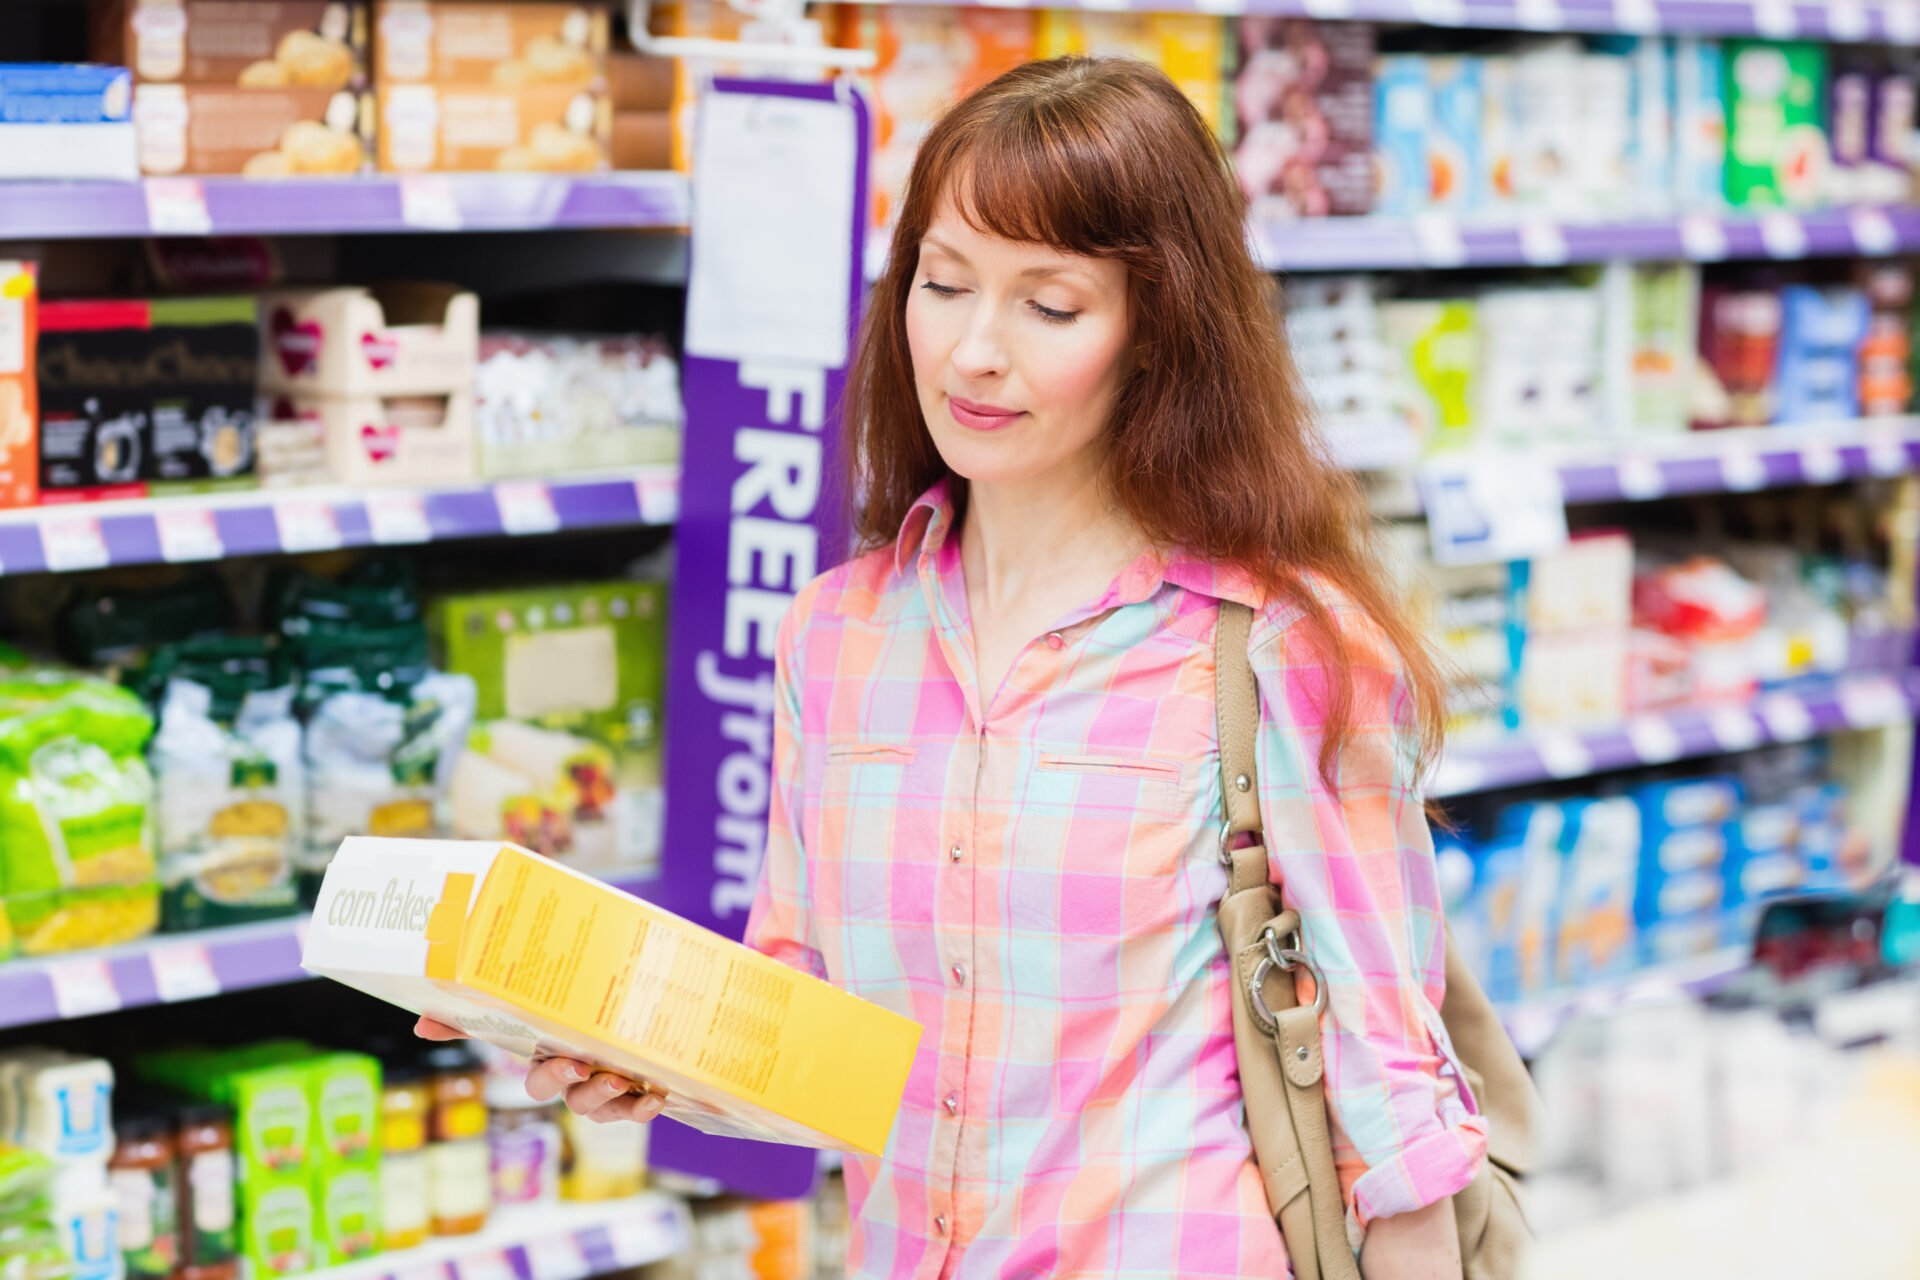 Thoughtful woman choosing a product at supermarket